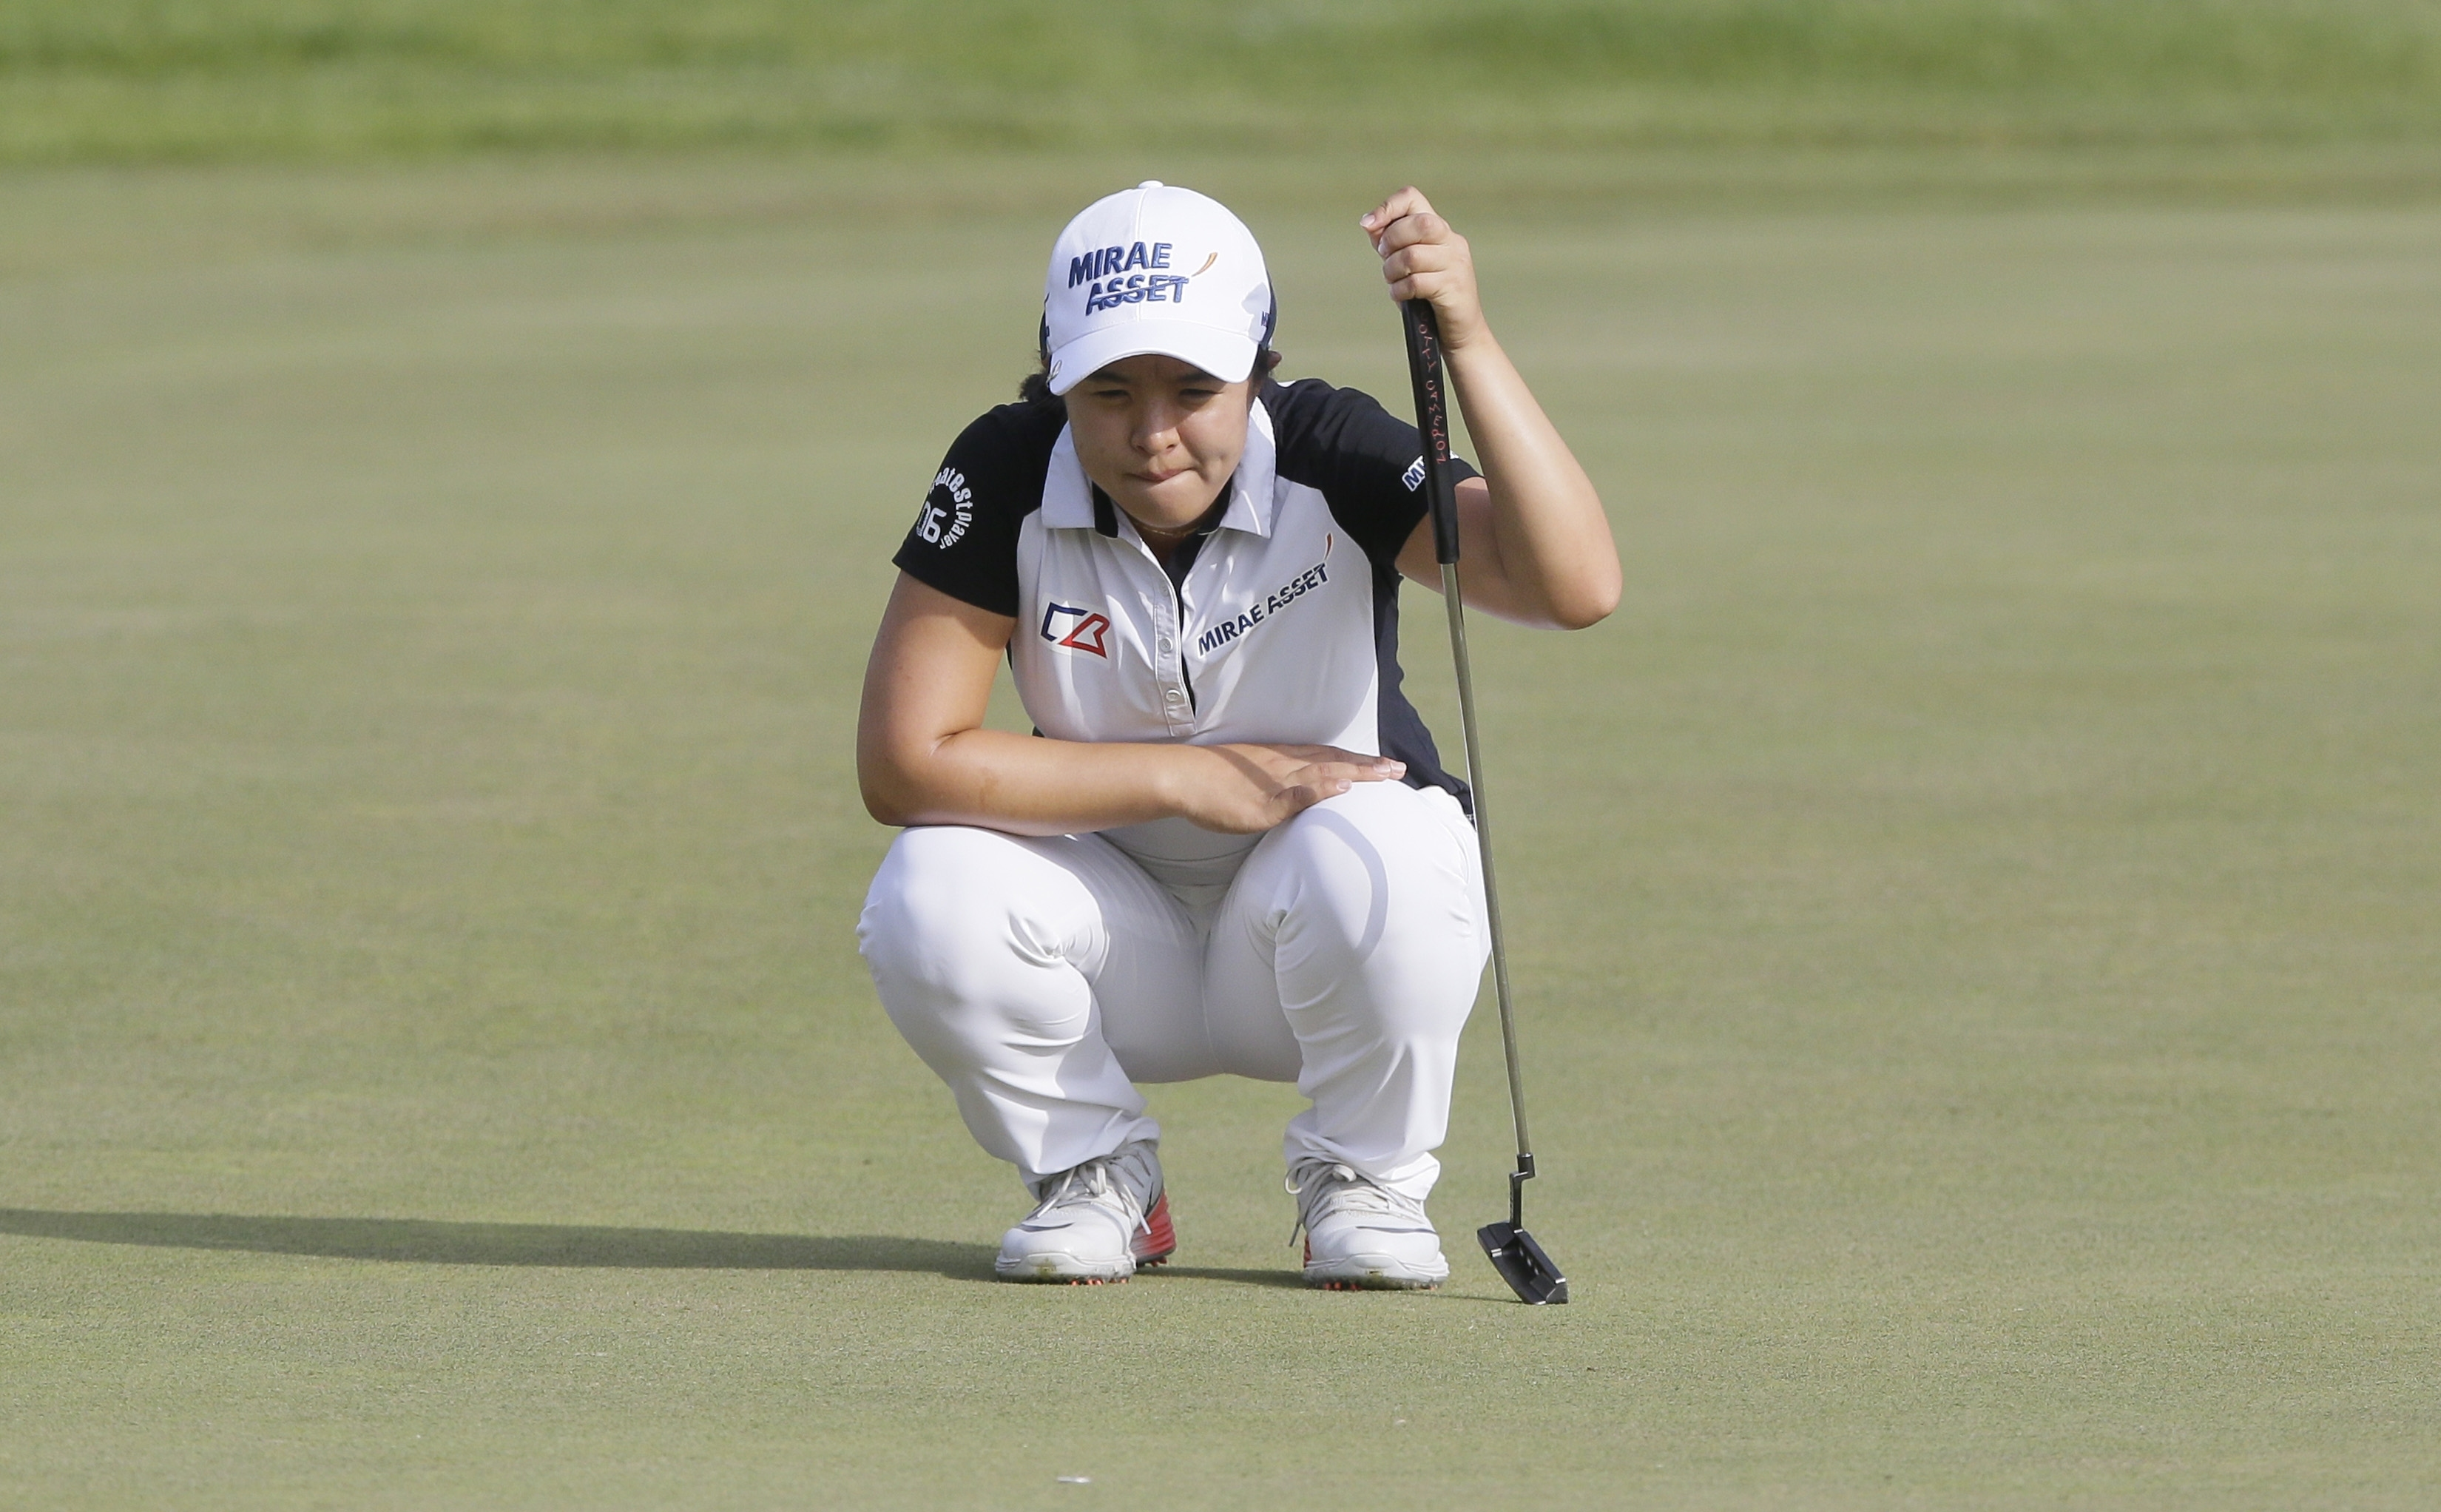 Sei Young Kim, of South Korea, eyes her putt on the 18th green during the first round of the LPGA Volvik Championship golf tournament at Travis Pointe Country Club, Thursday, May 26, 2016, in Ann Arbor, Mich. (AP Photo/Carlos Osorio)